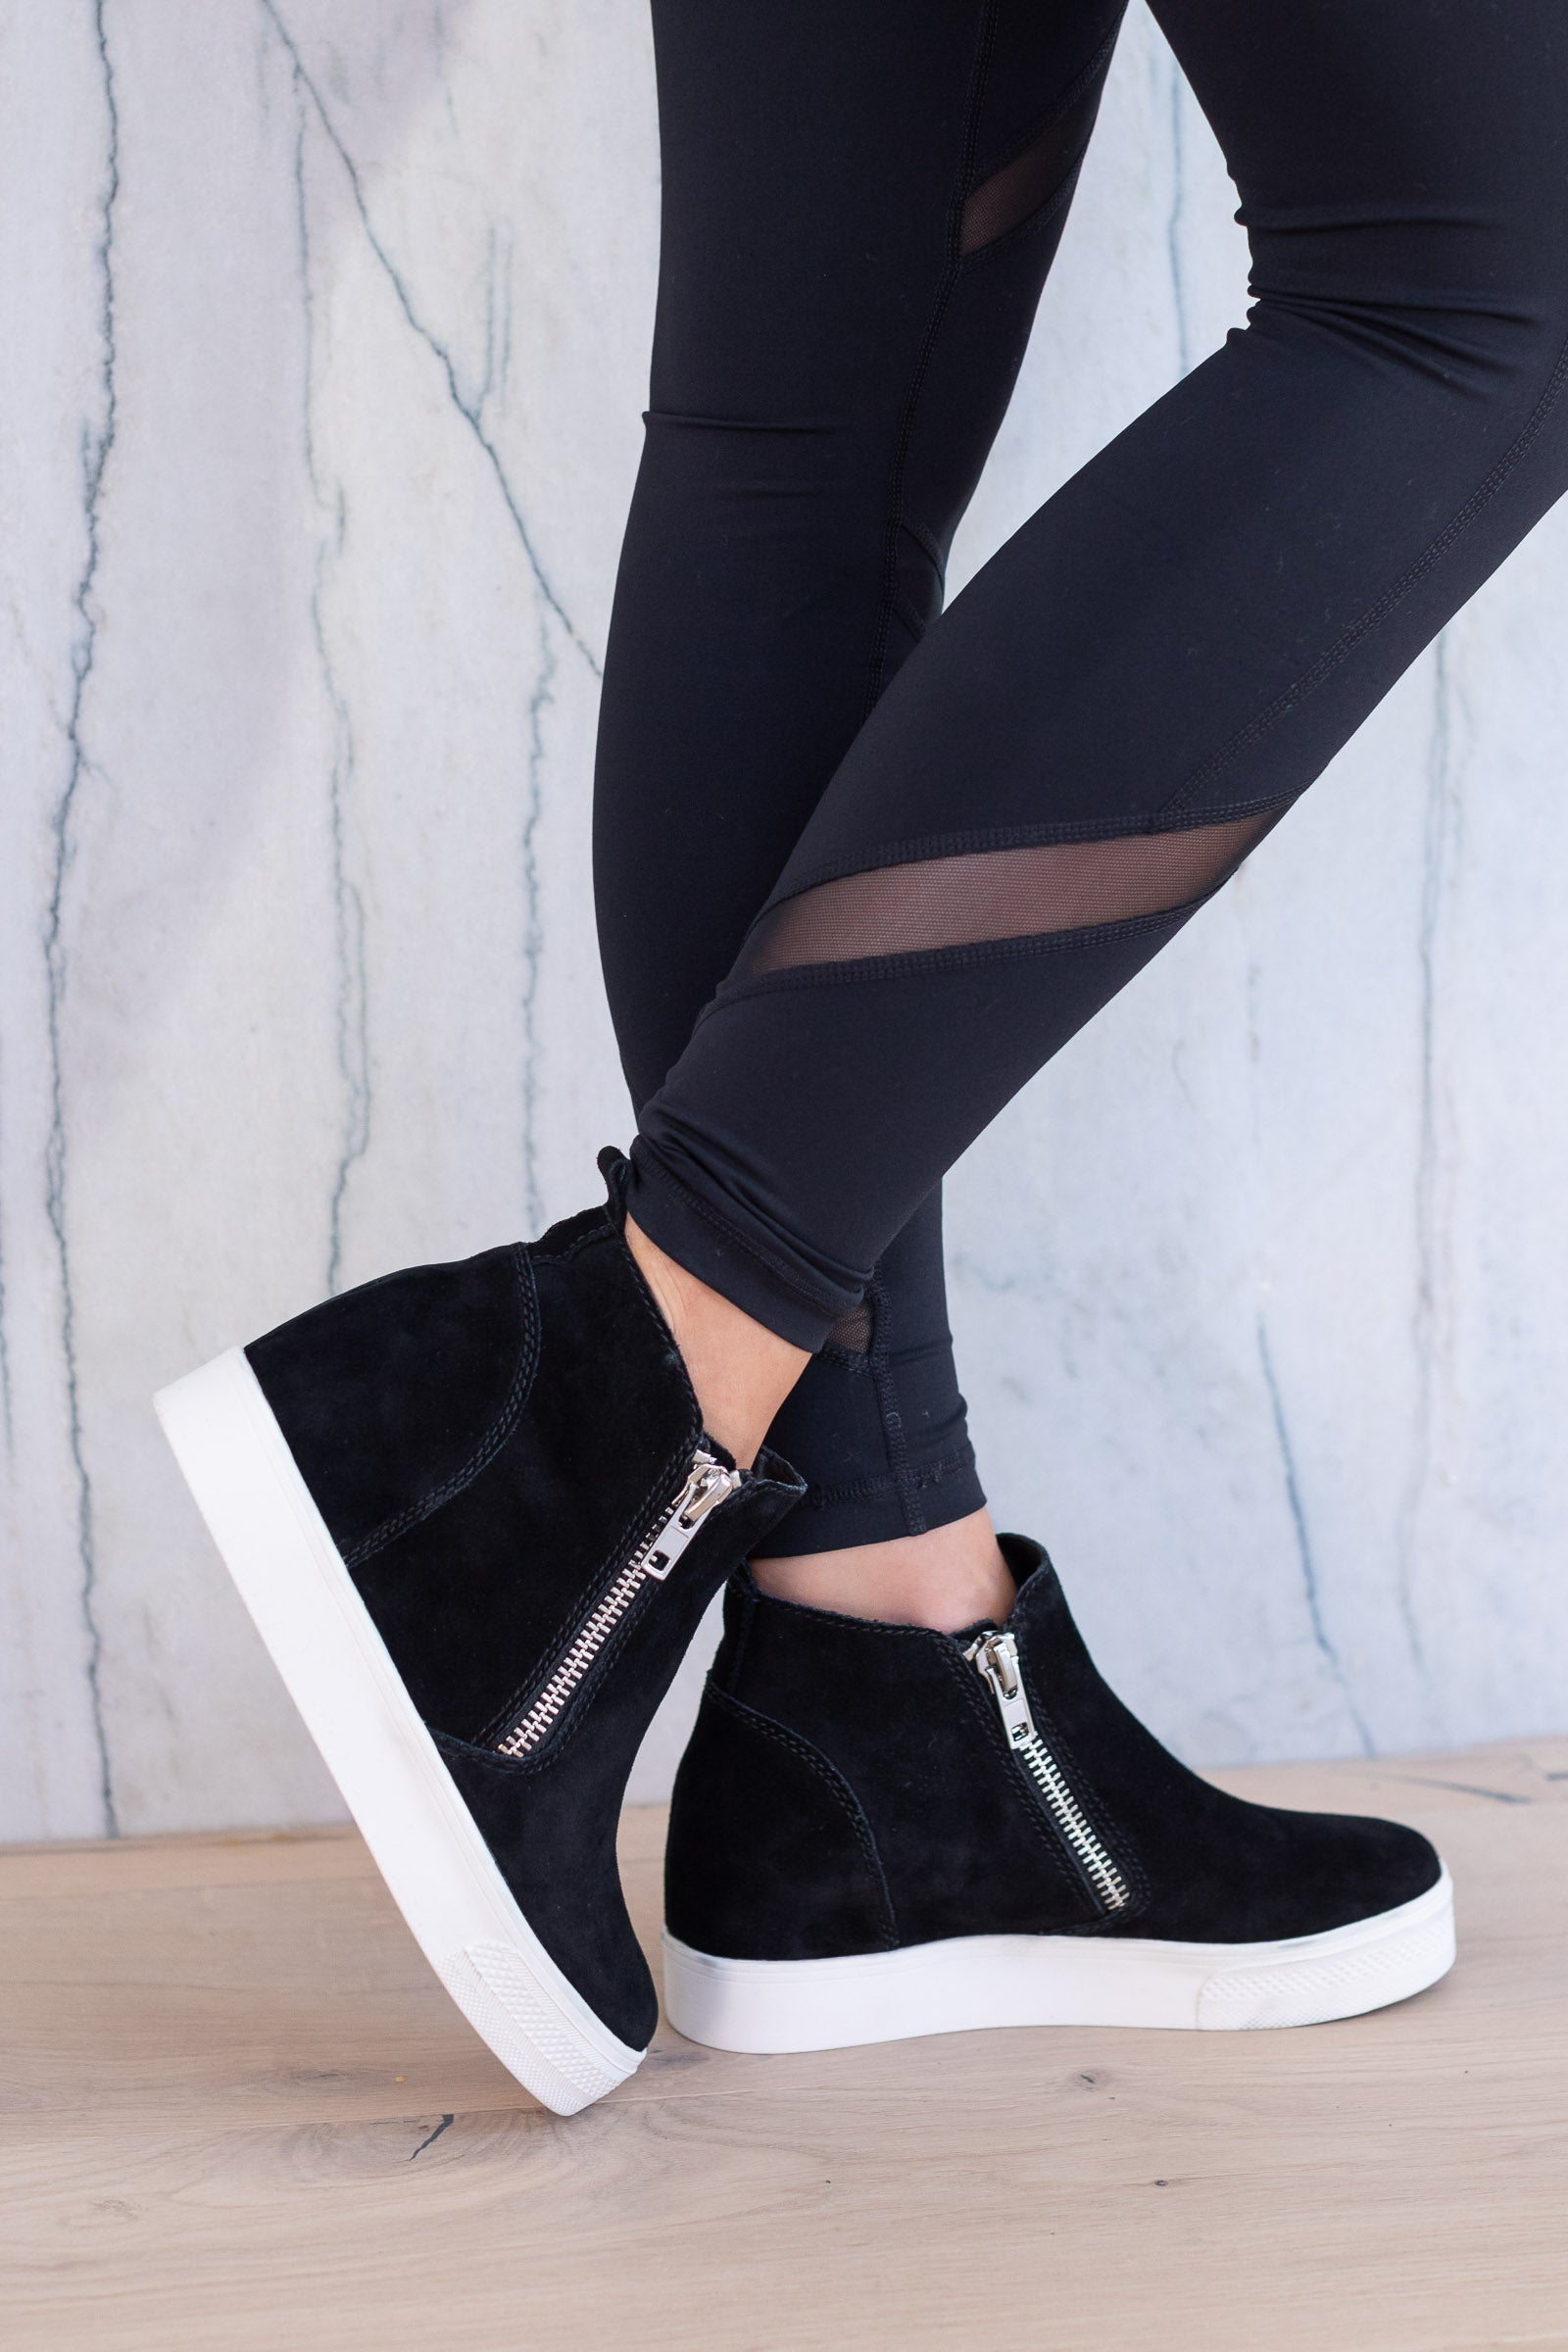 fa3565266a STEVE MADDEN Wedgie Sneakers - Black, wedge sole, zipper shoe, closet candy  boutique